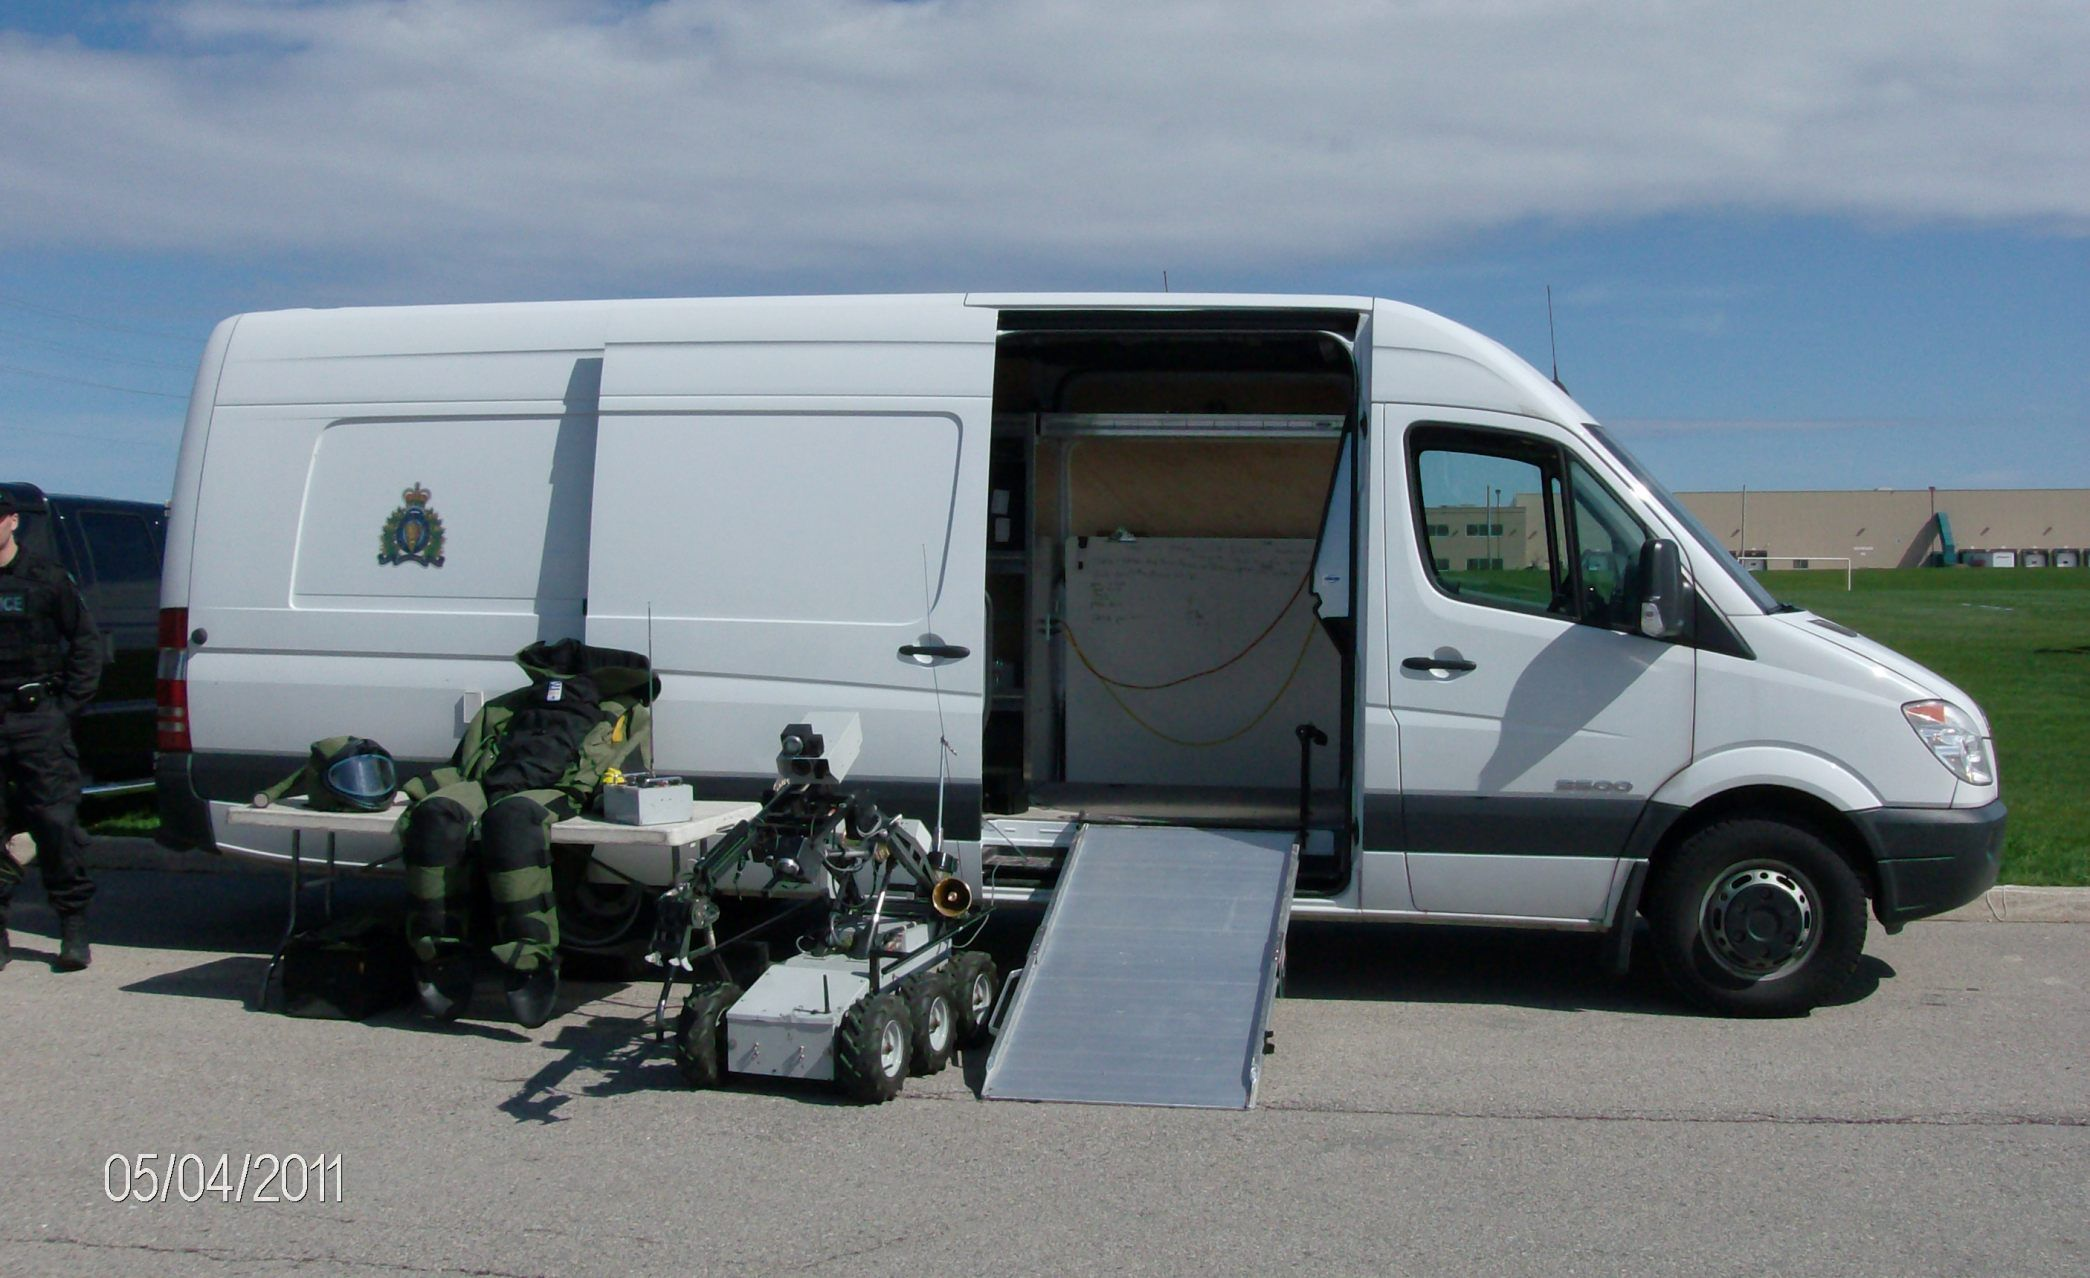 Rcmp Dodge Sprinter Bombs Squad Unit With Images Recreational